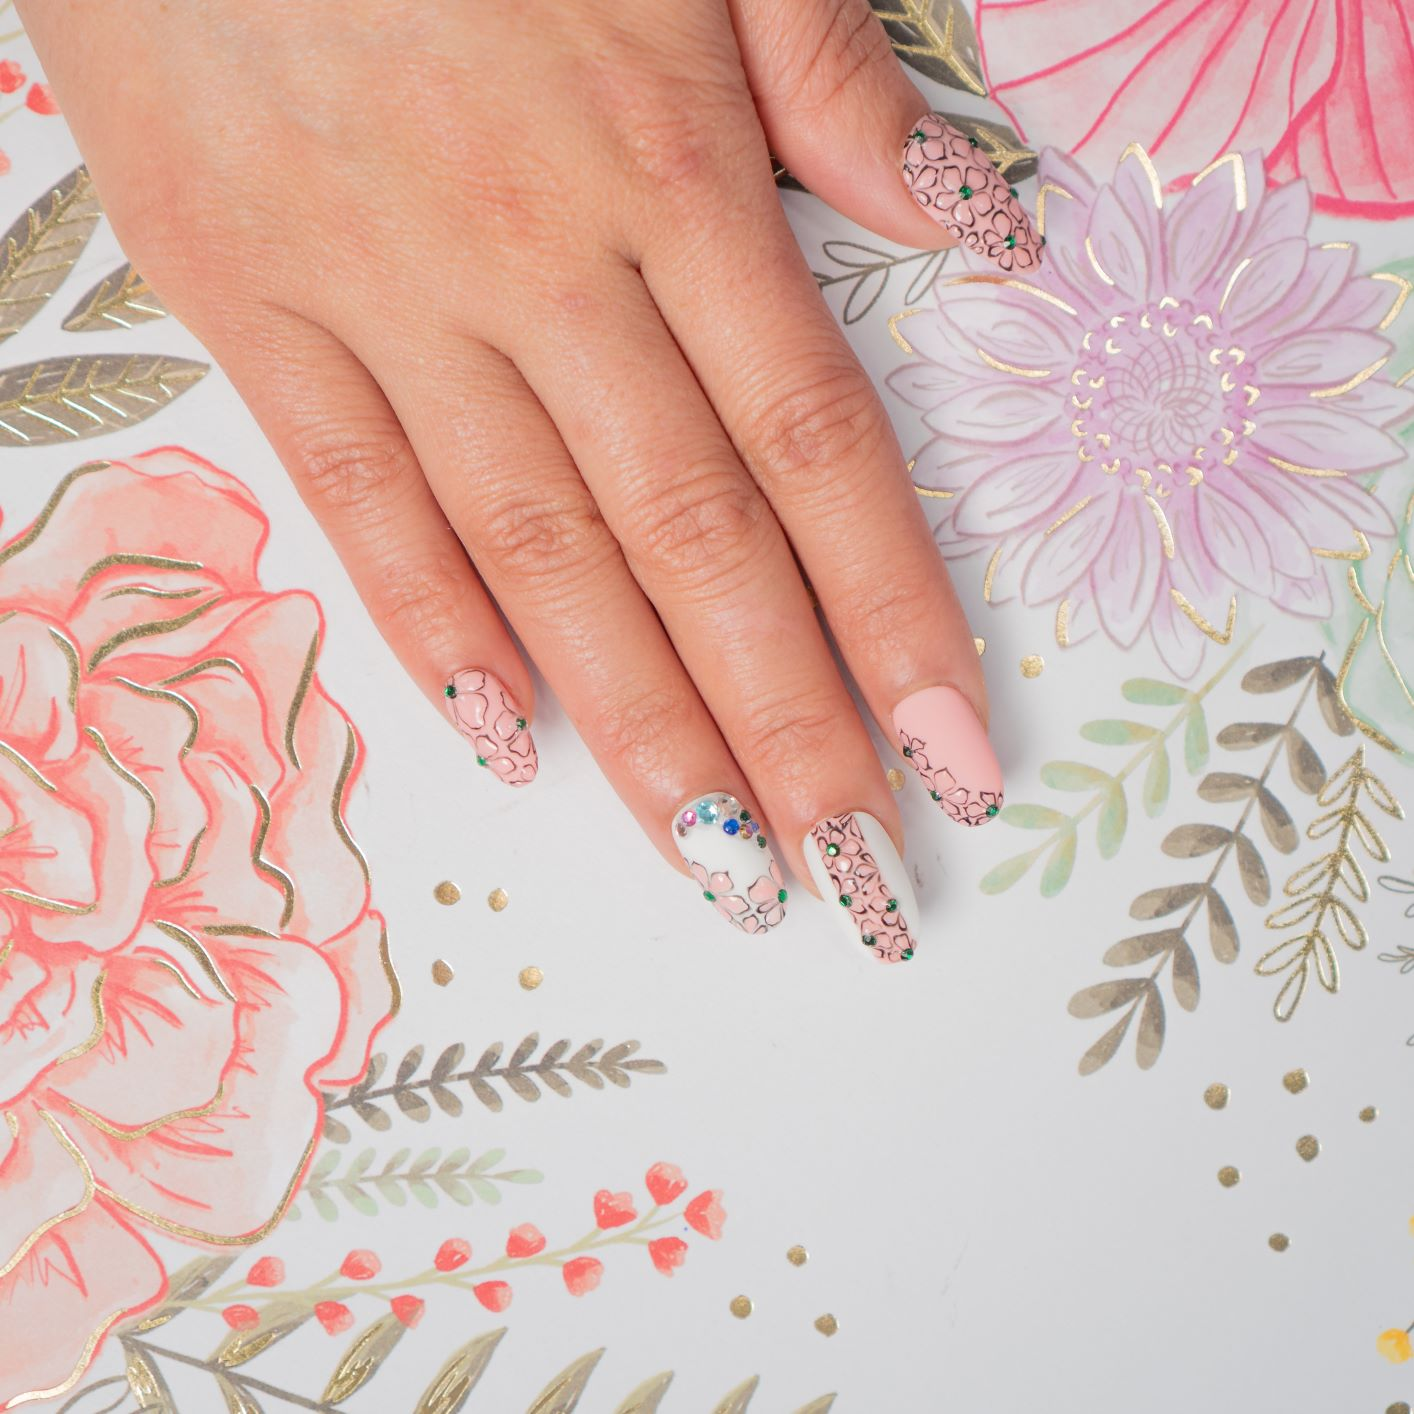 Hand with pink and white nails, decorated with flower patterns and gems